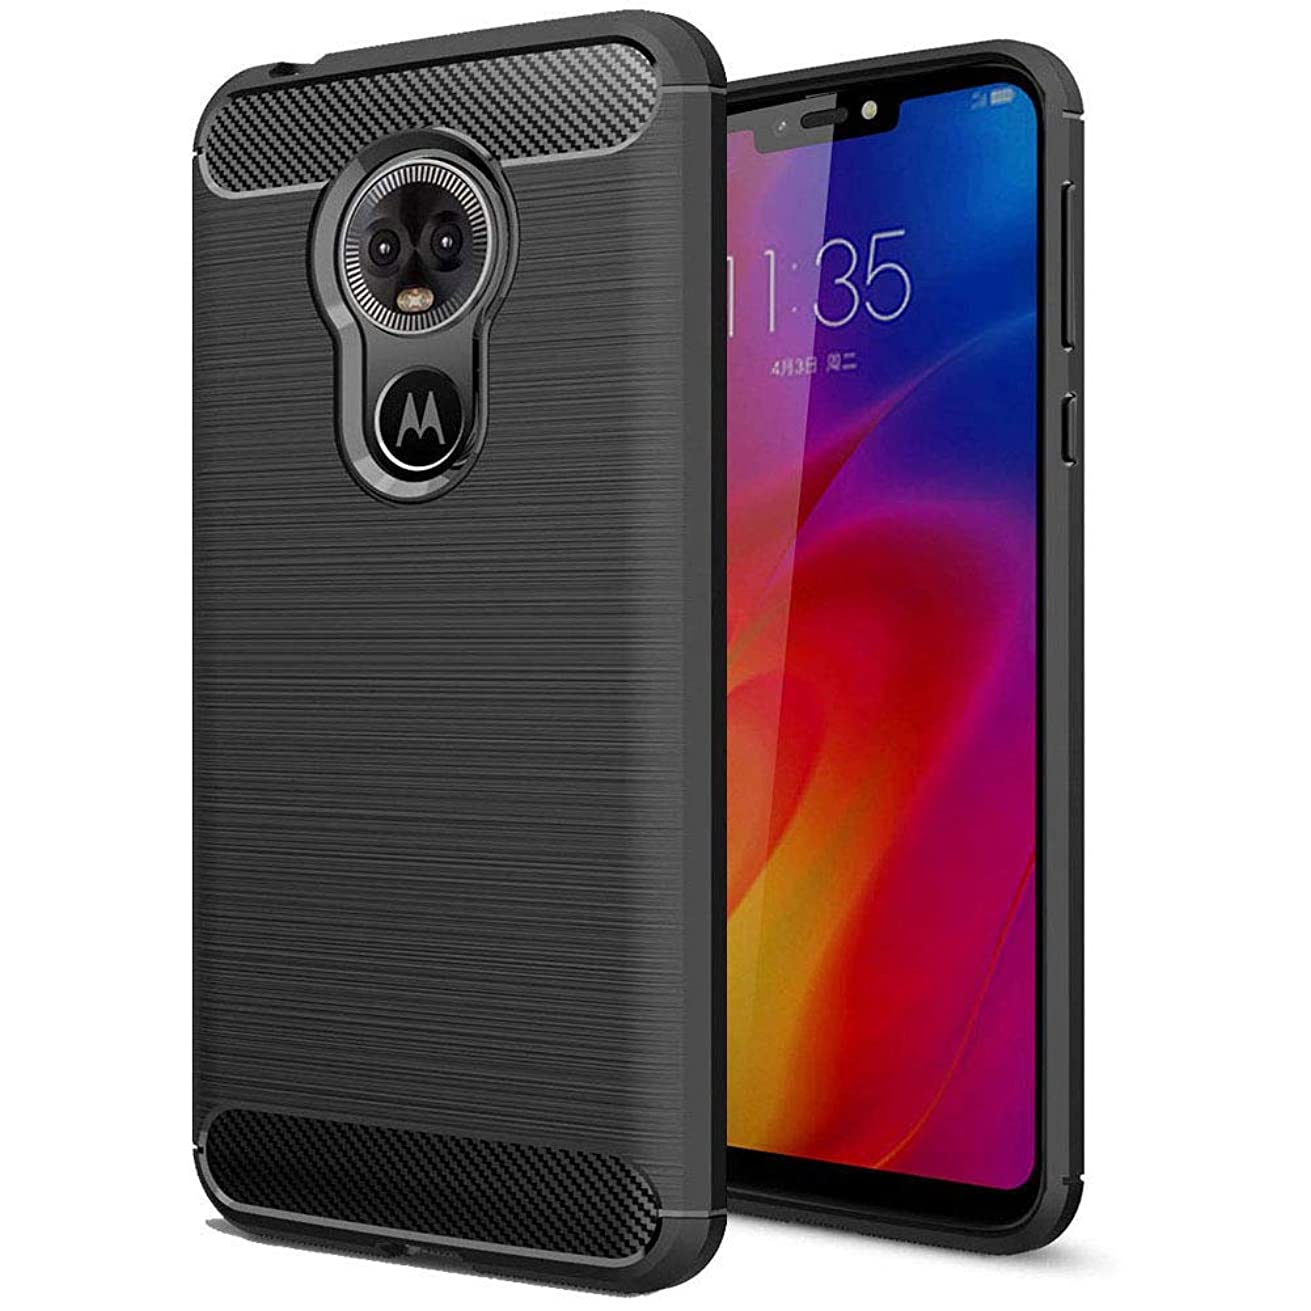 Moto E6 Case, SKTGSLAMY Moto E6 Case with Scratch Resistant Shock Absorption Brushed Texture Soft TPU Cover for Motorola Moto E6 (Black)